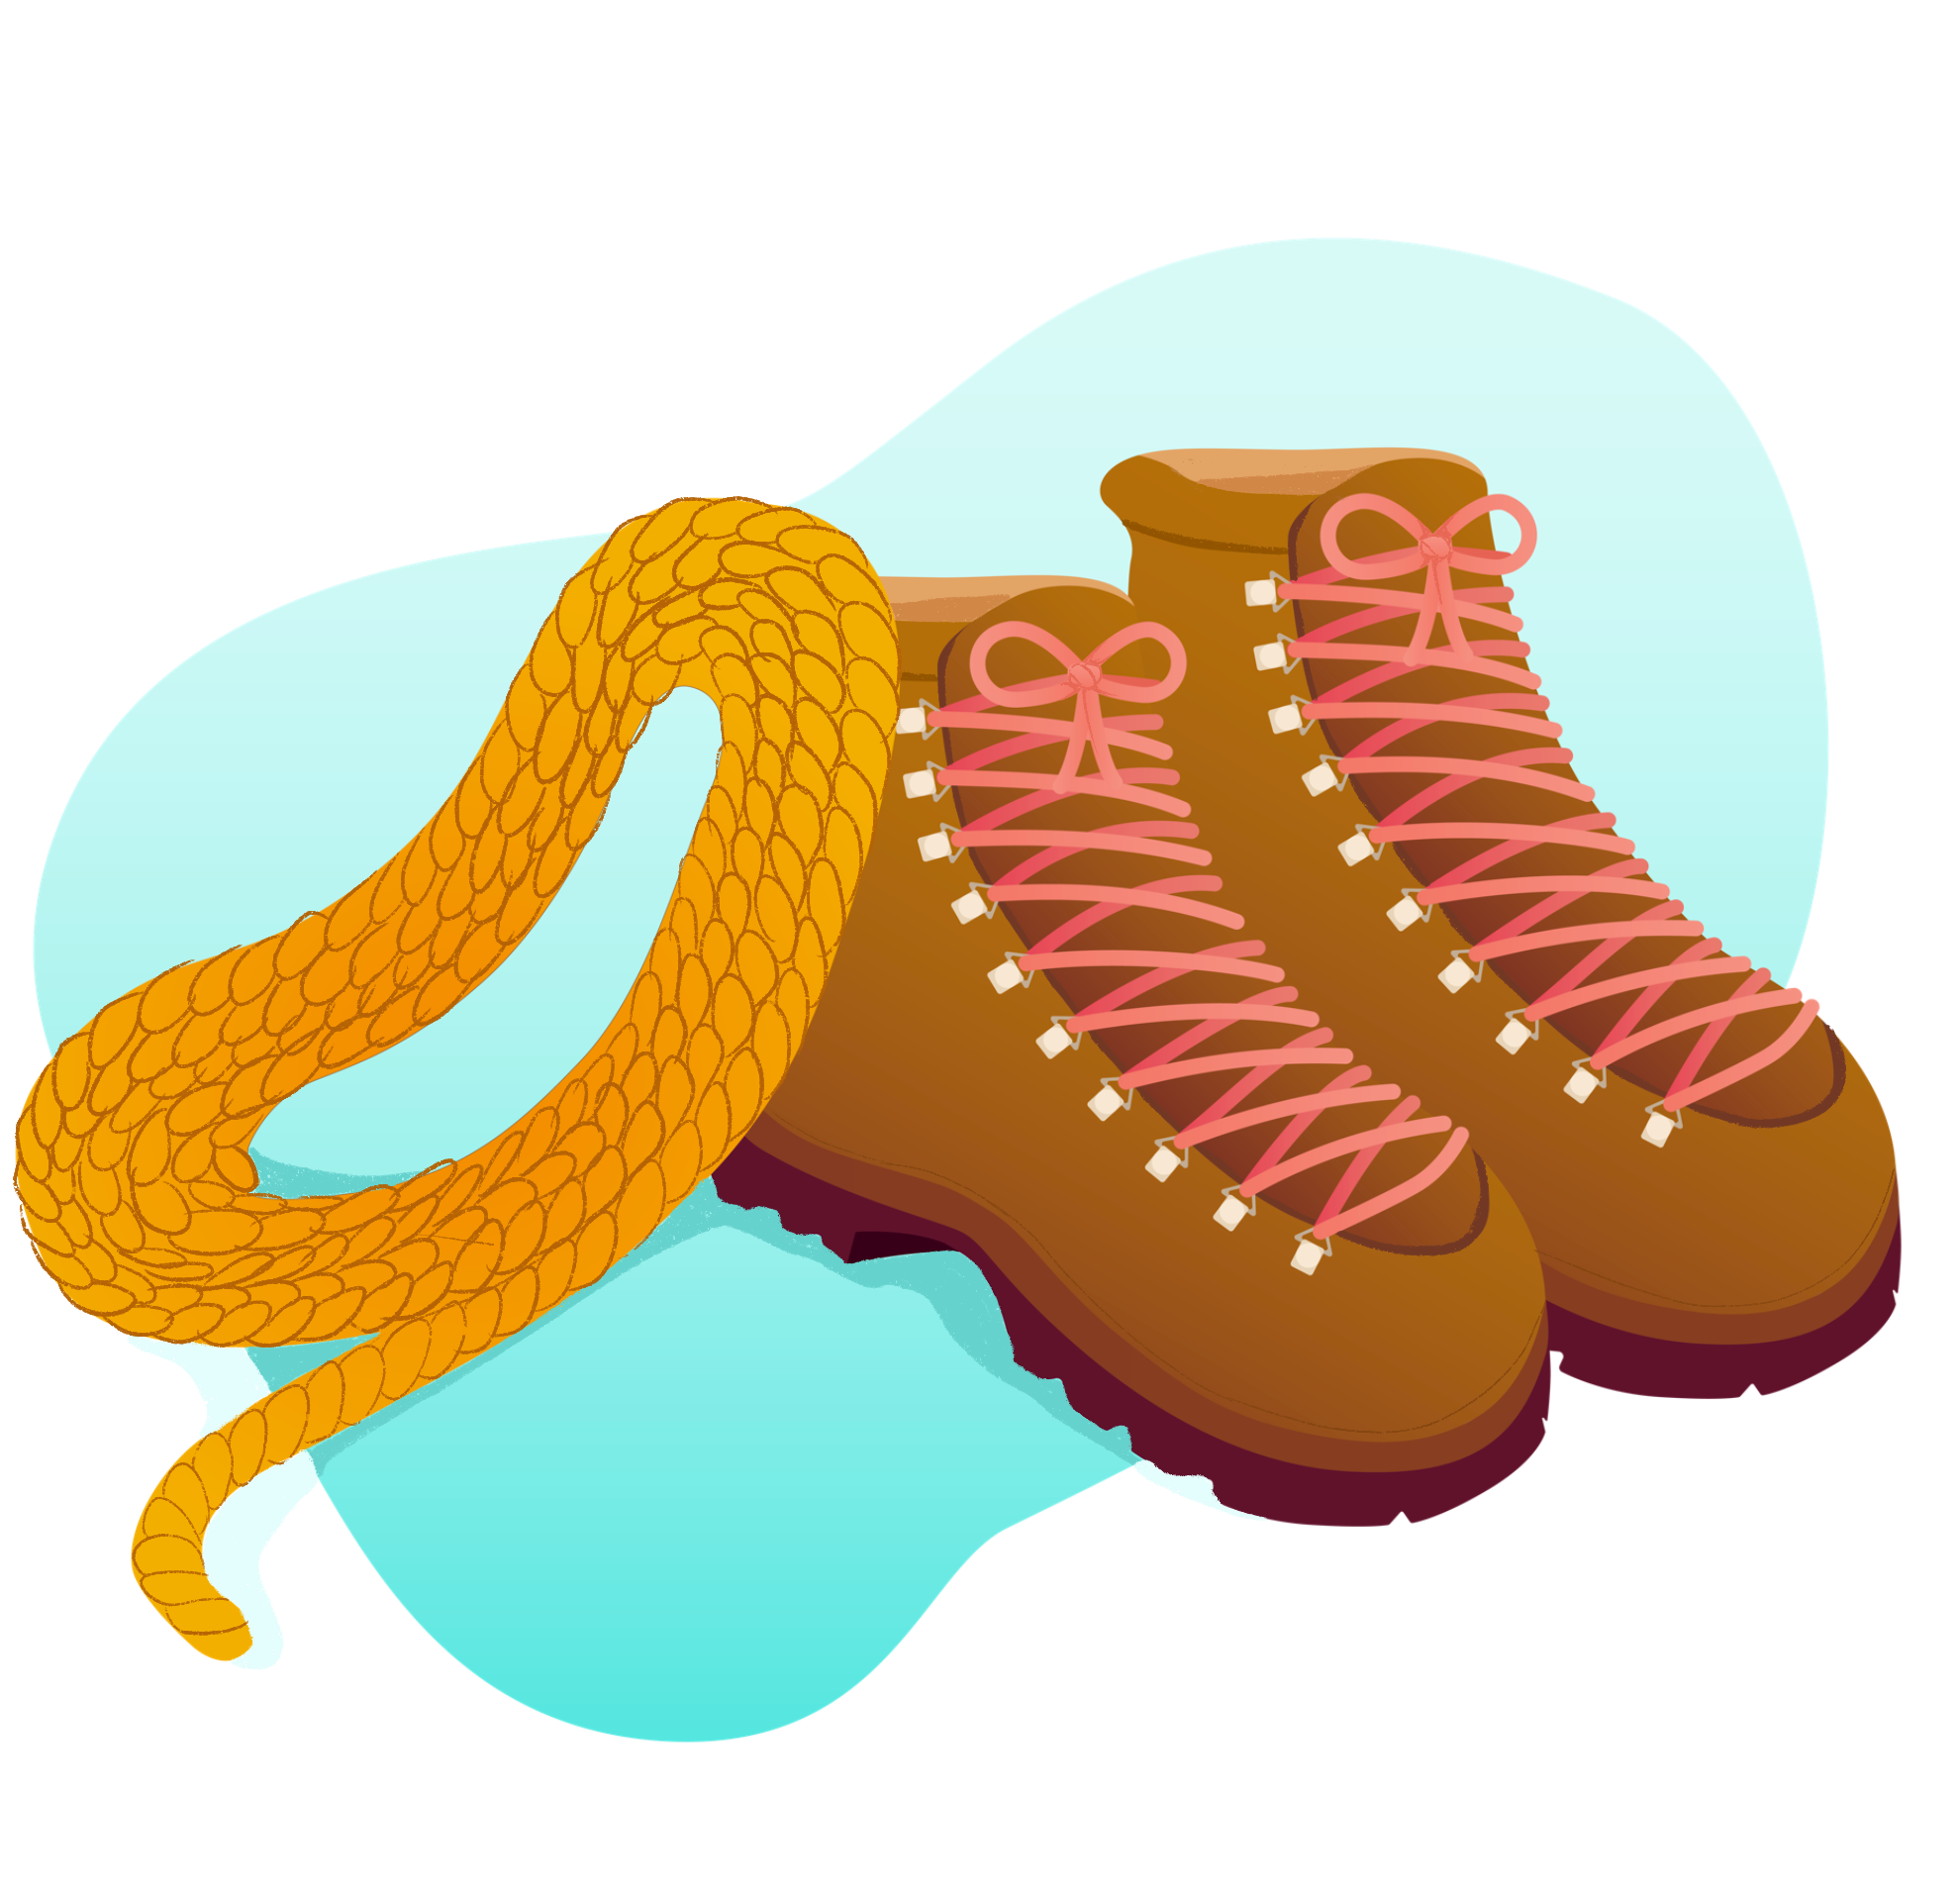 A climbing rope and hiking boots